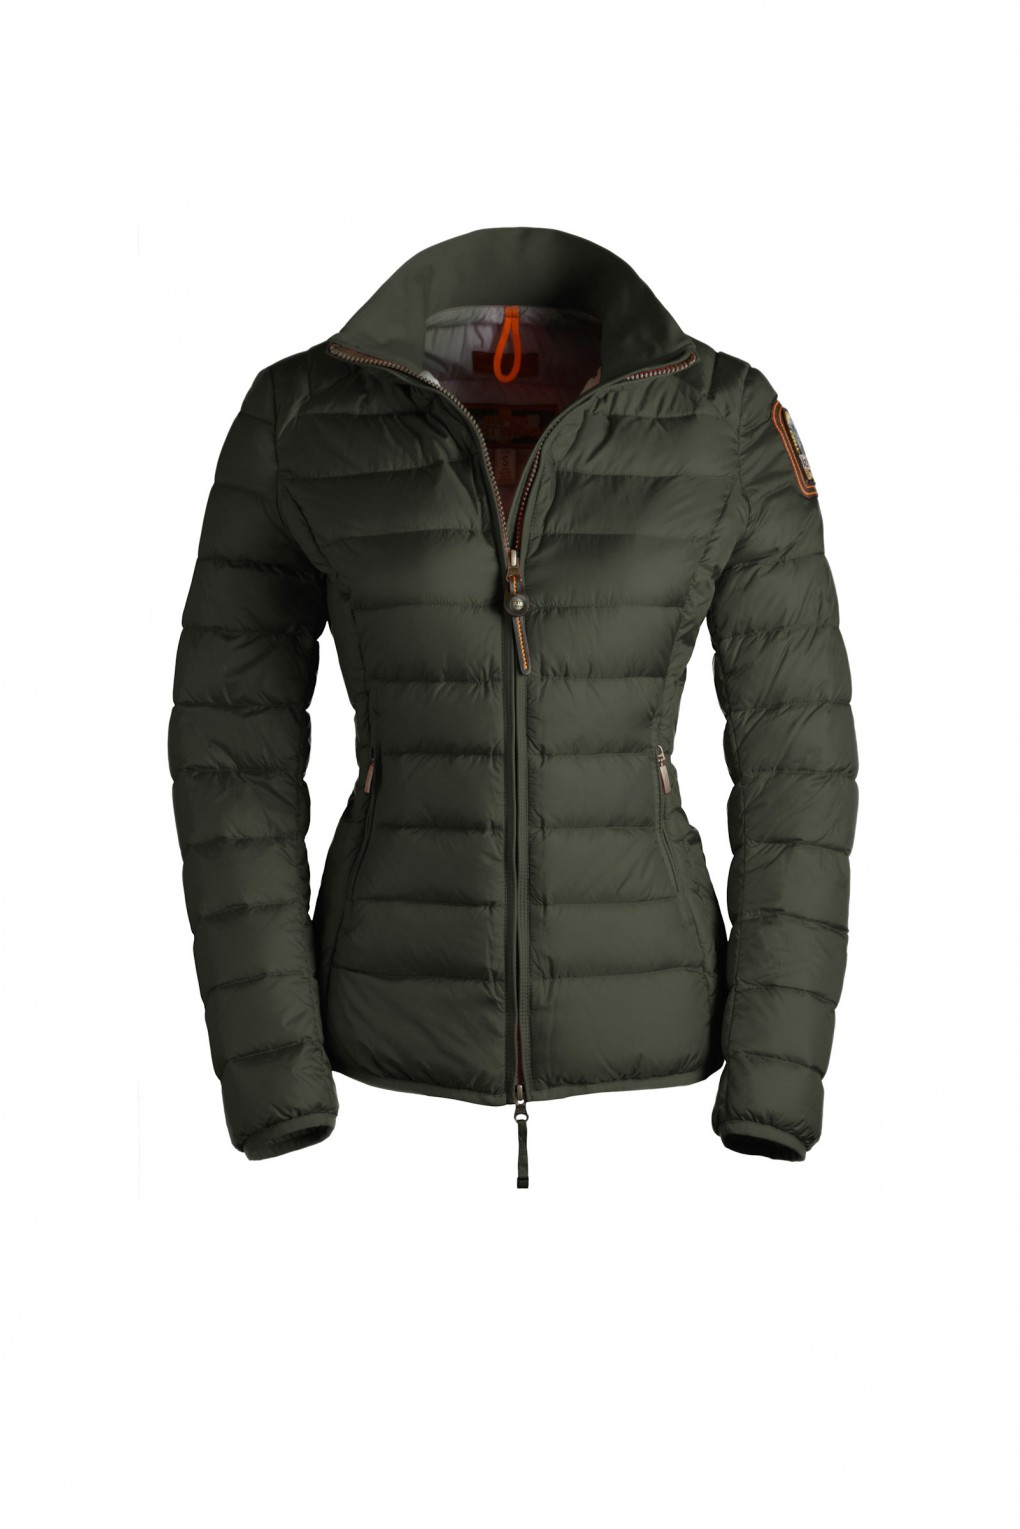 parajumpers GEENA 6 woman outerwear Army